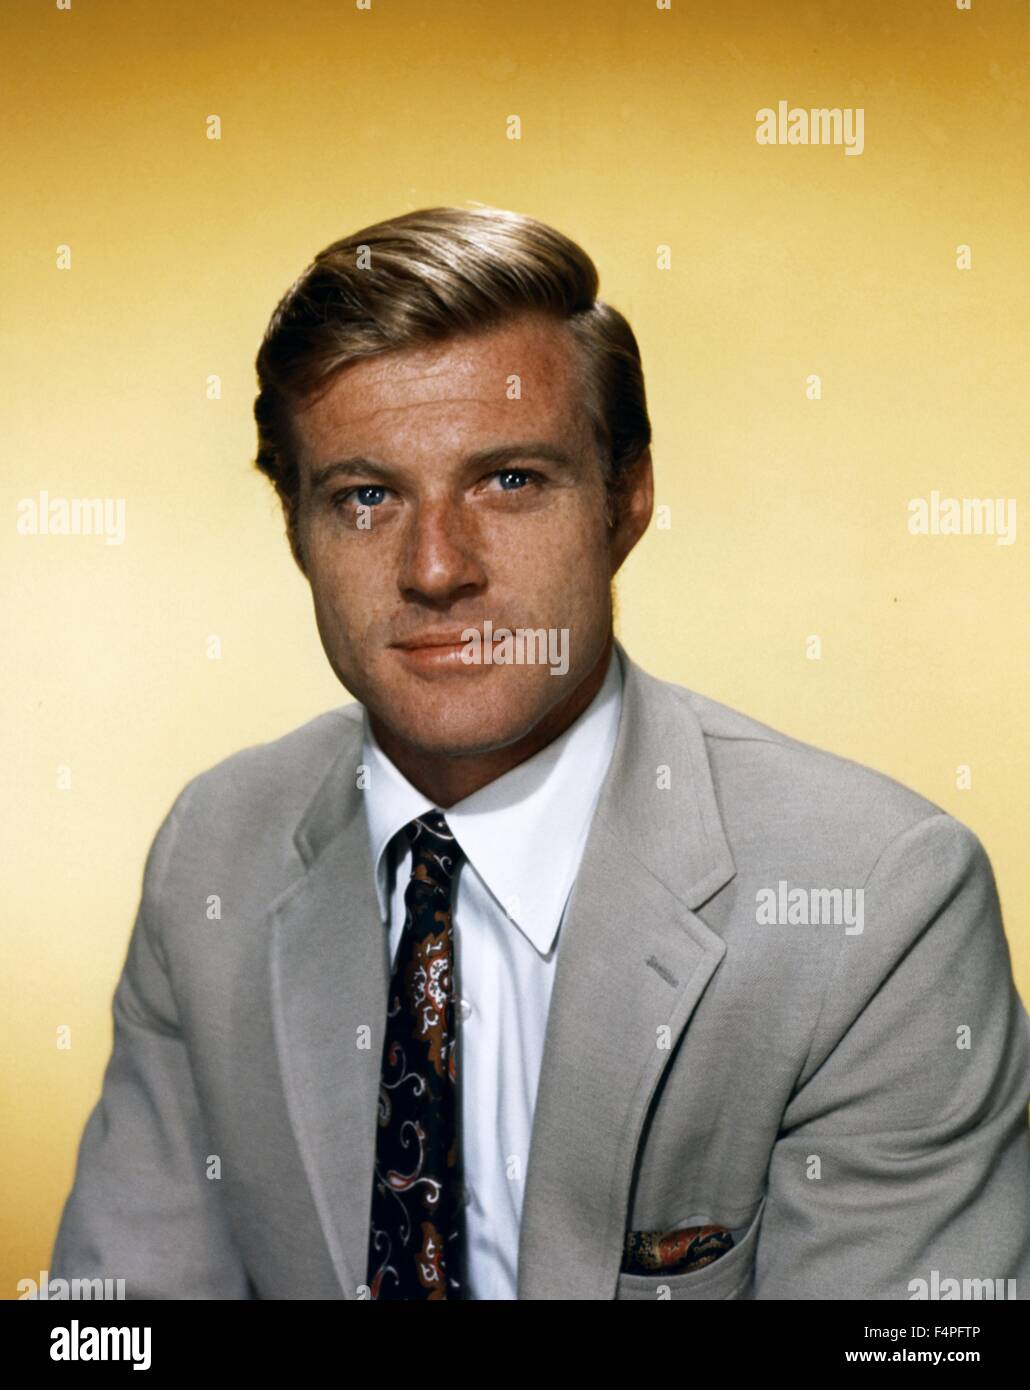 Robert Redford in the 60's - Stock Image